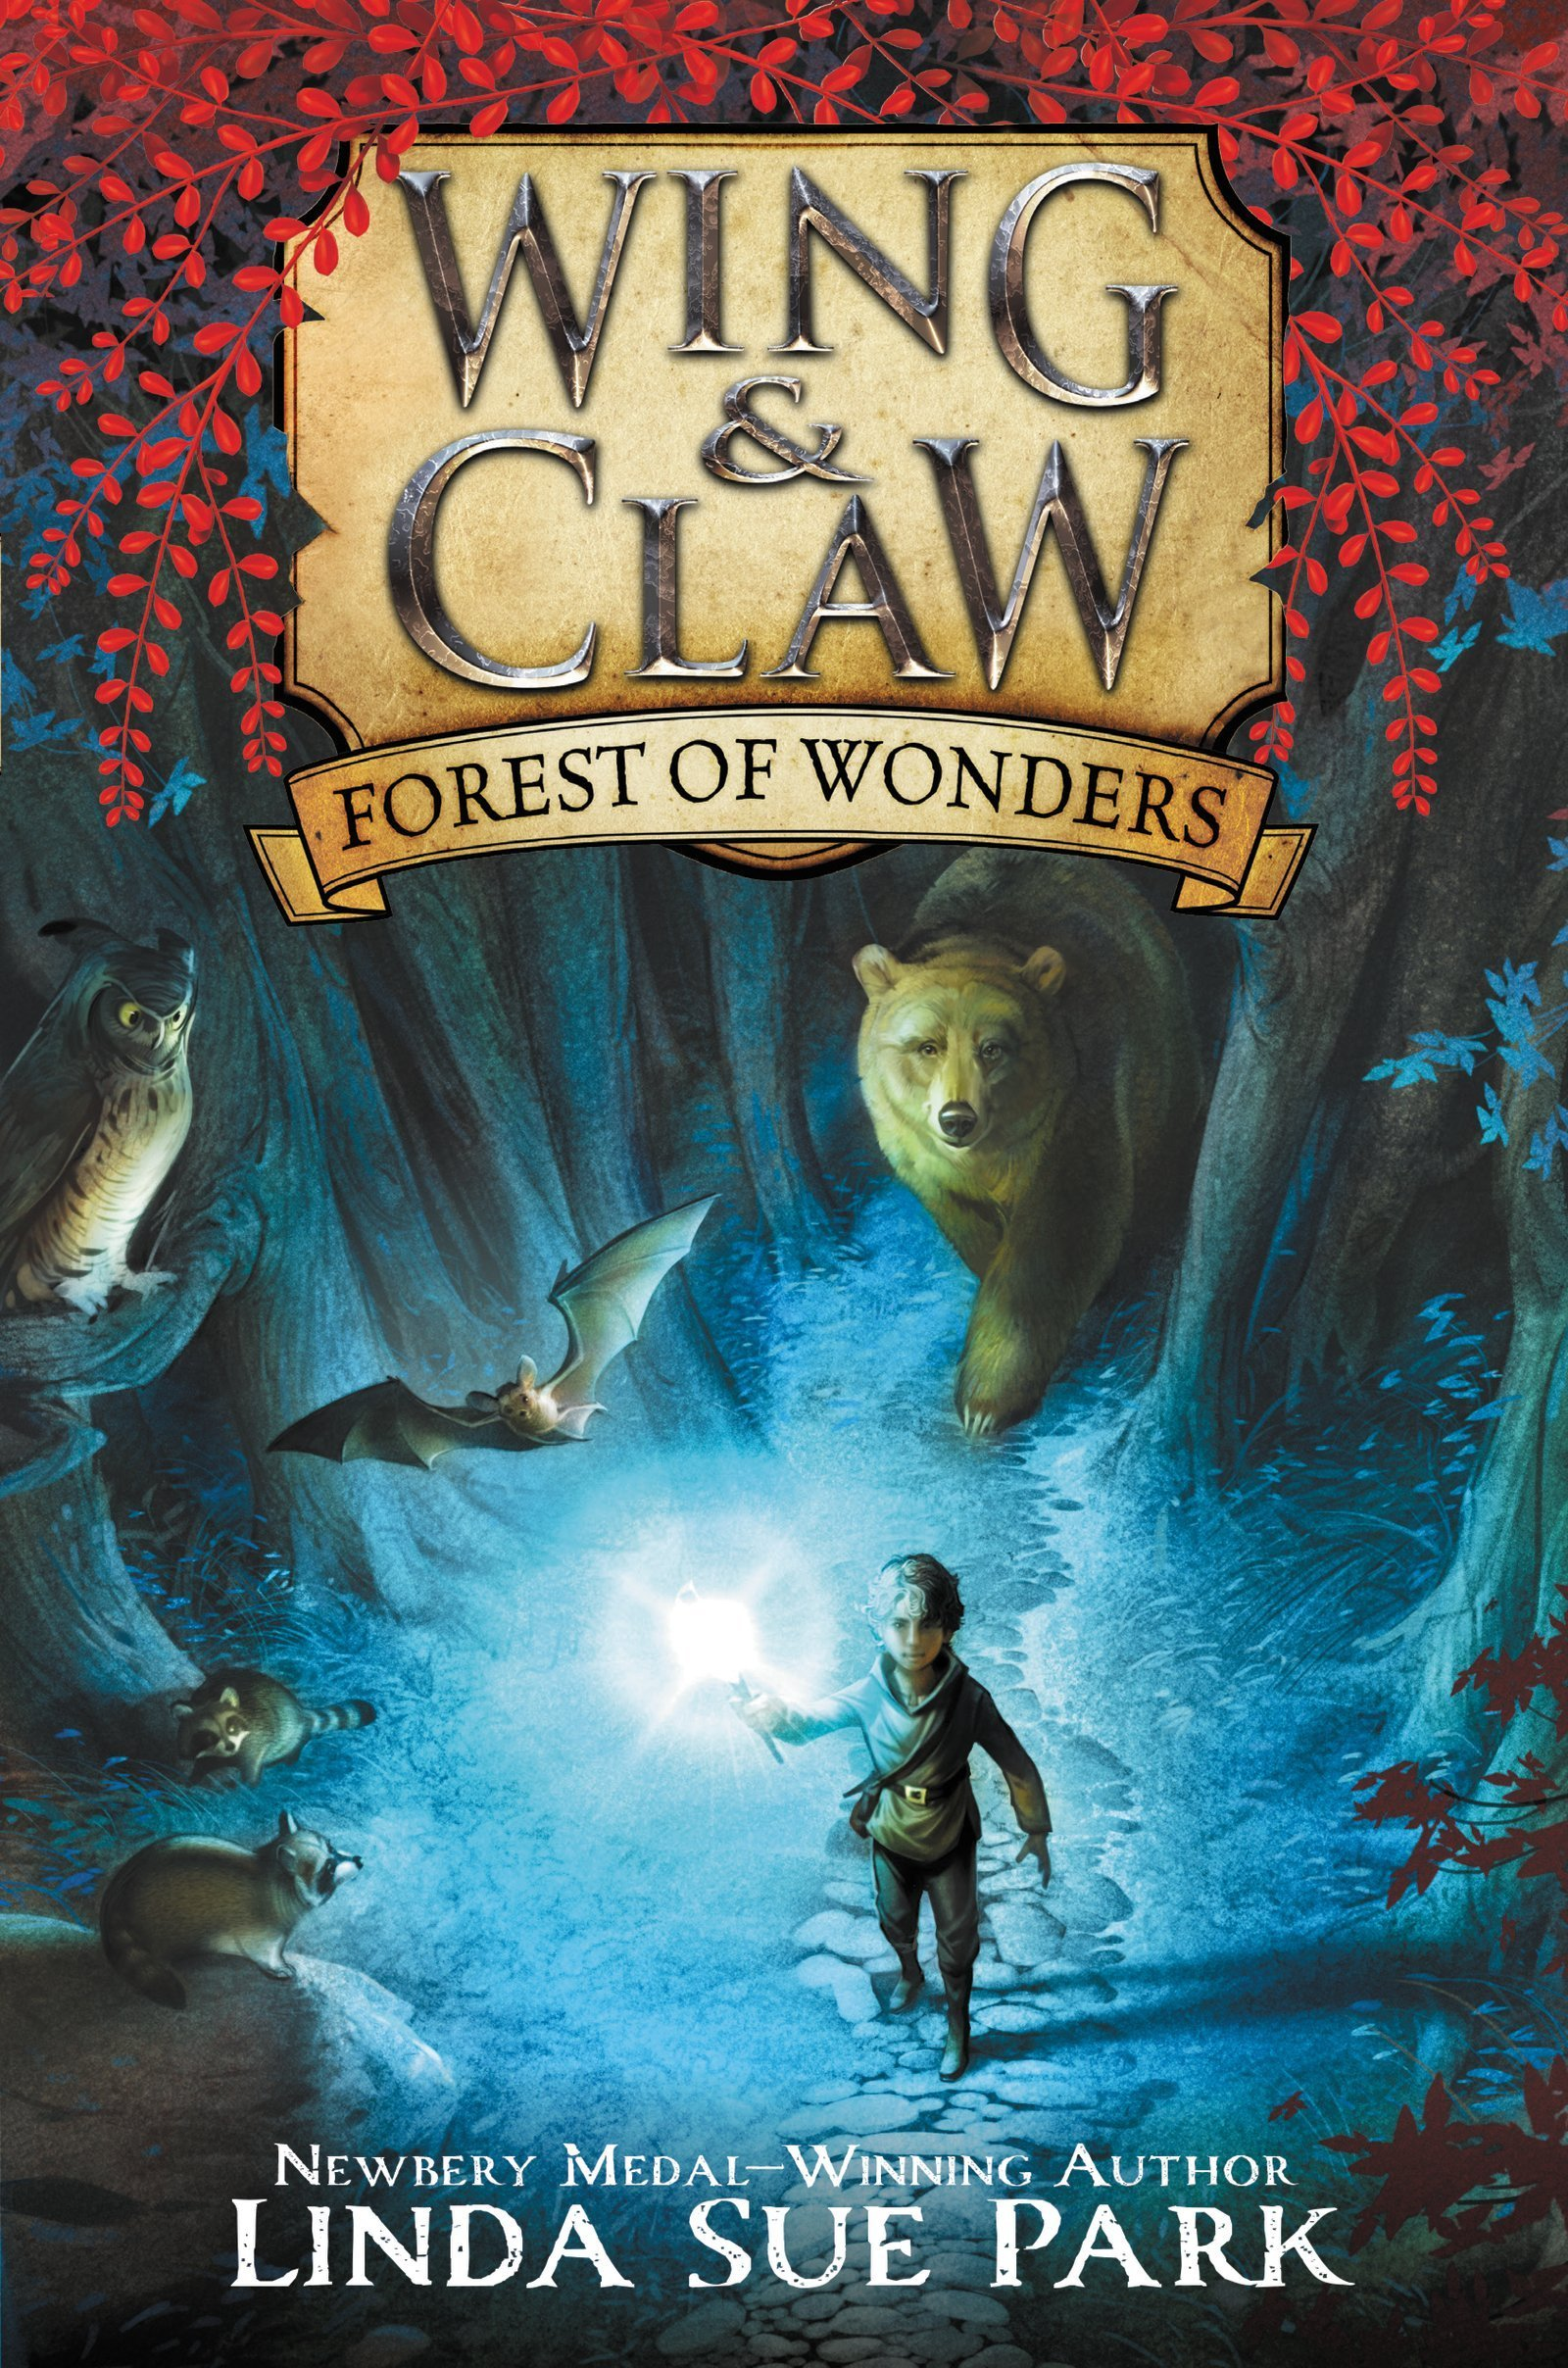 (Wing & Claw 1) Park, Linda Sue - Forest of Wonders